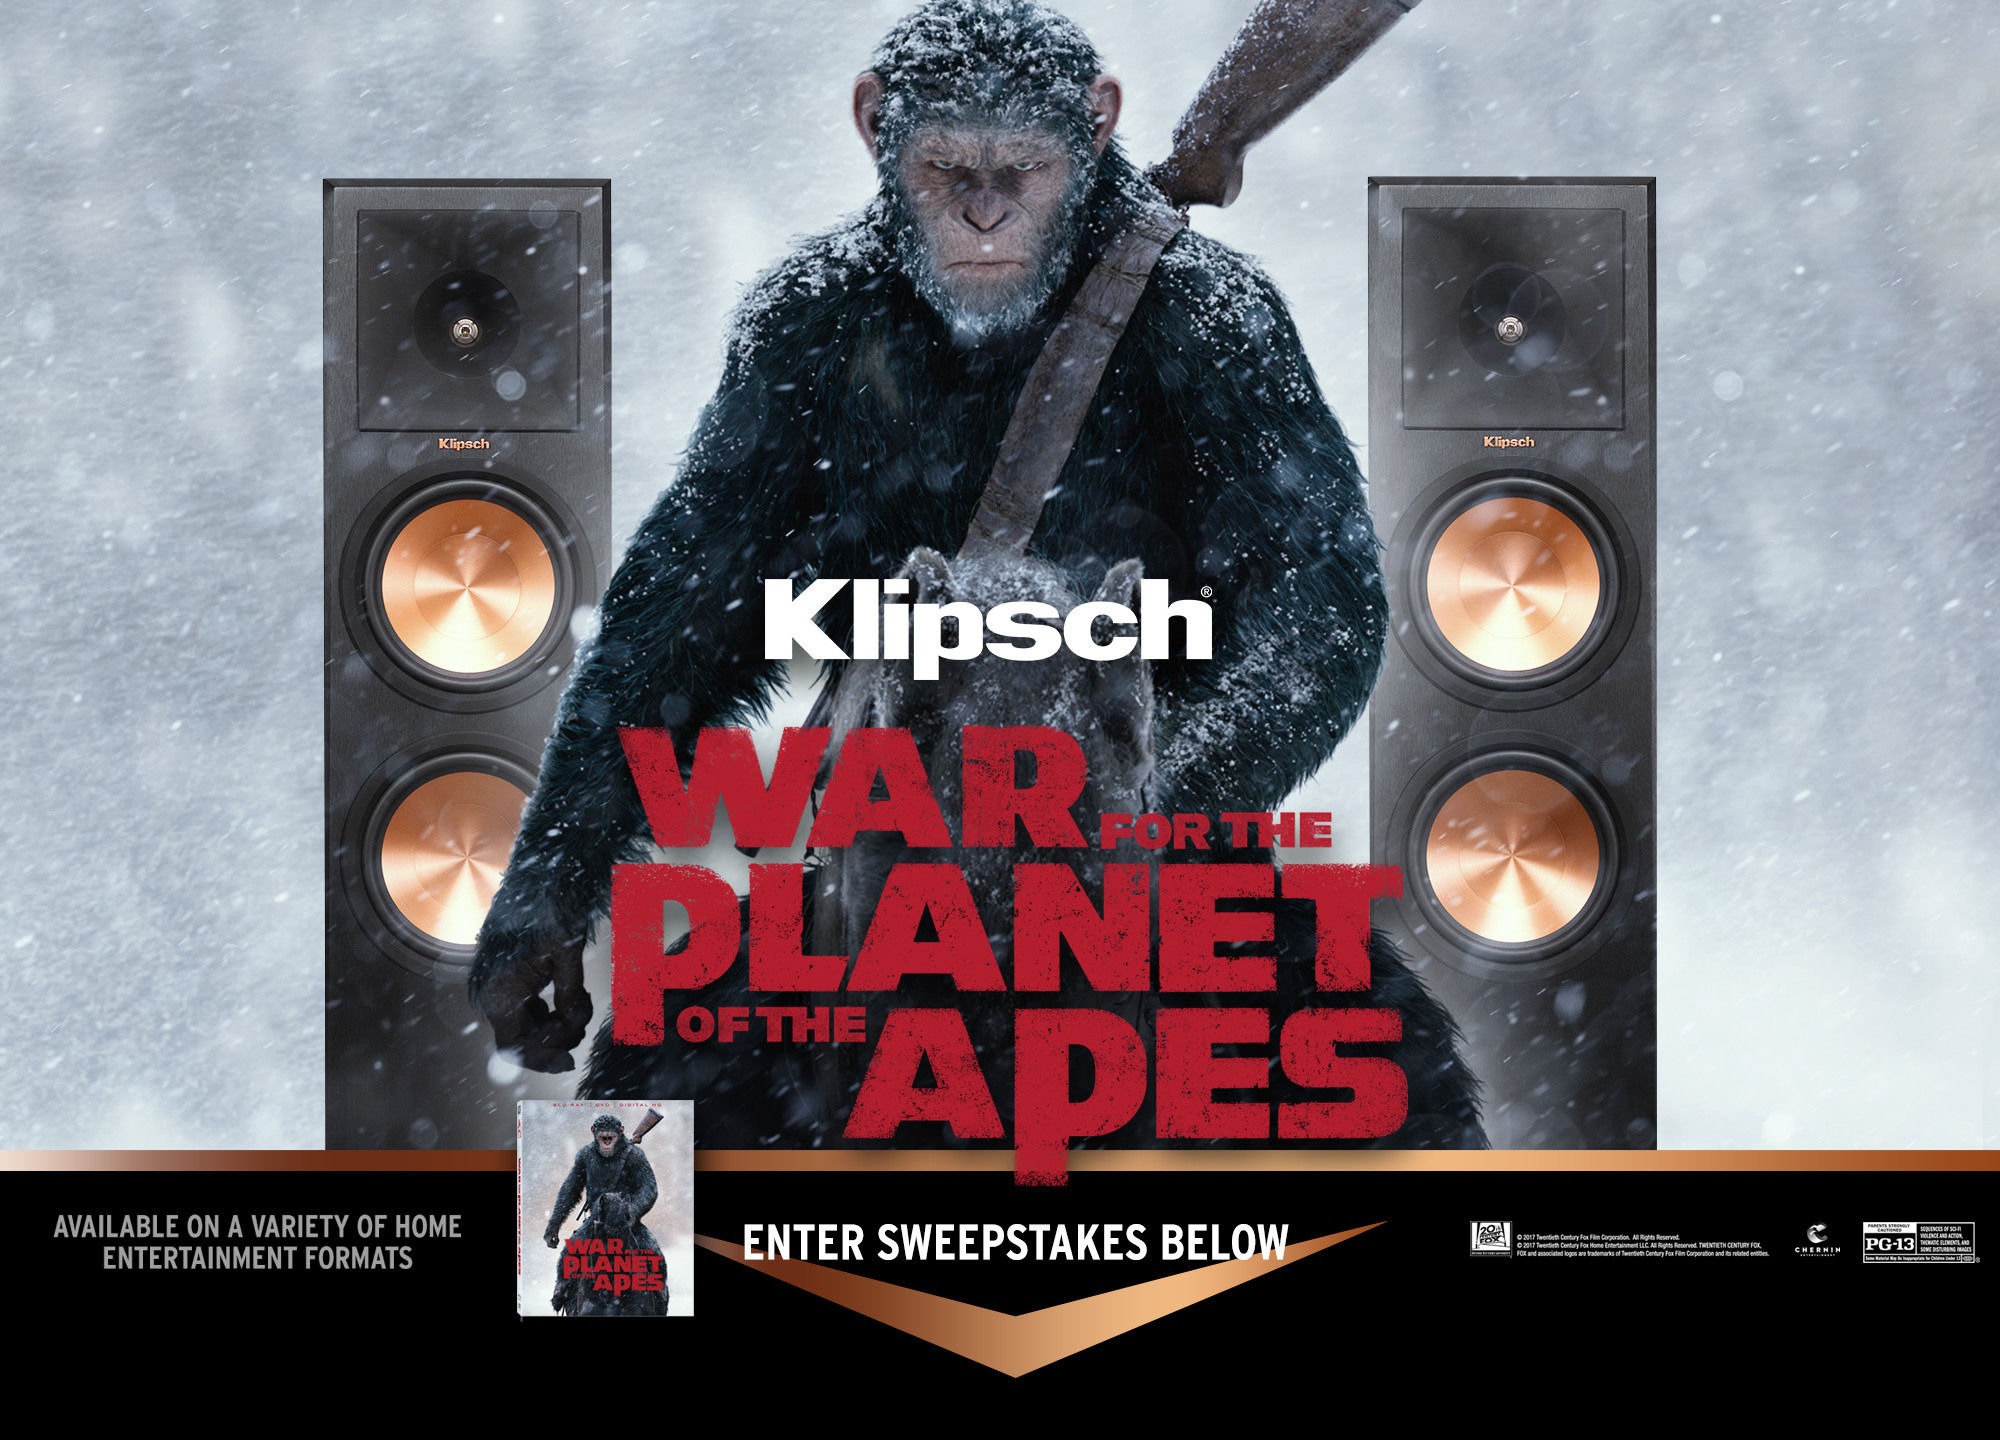 Planet of the Apes Sweepstakes